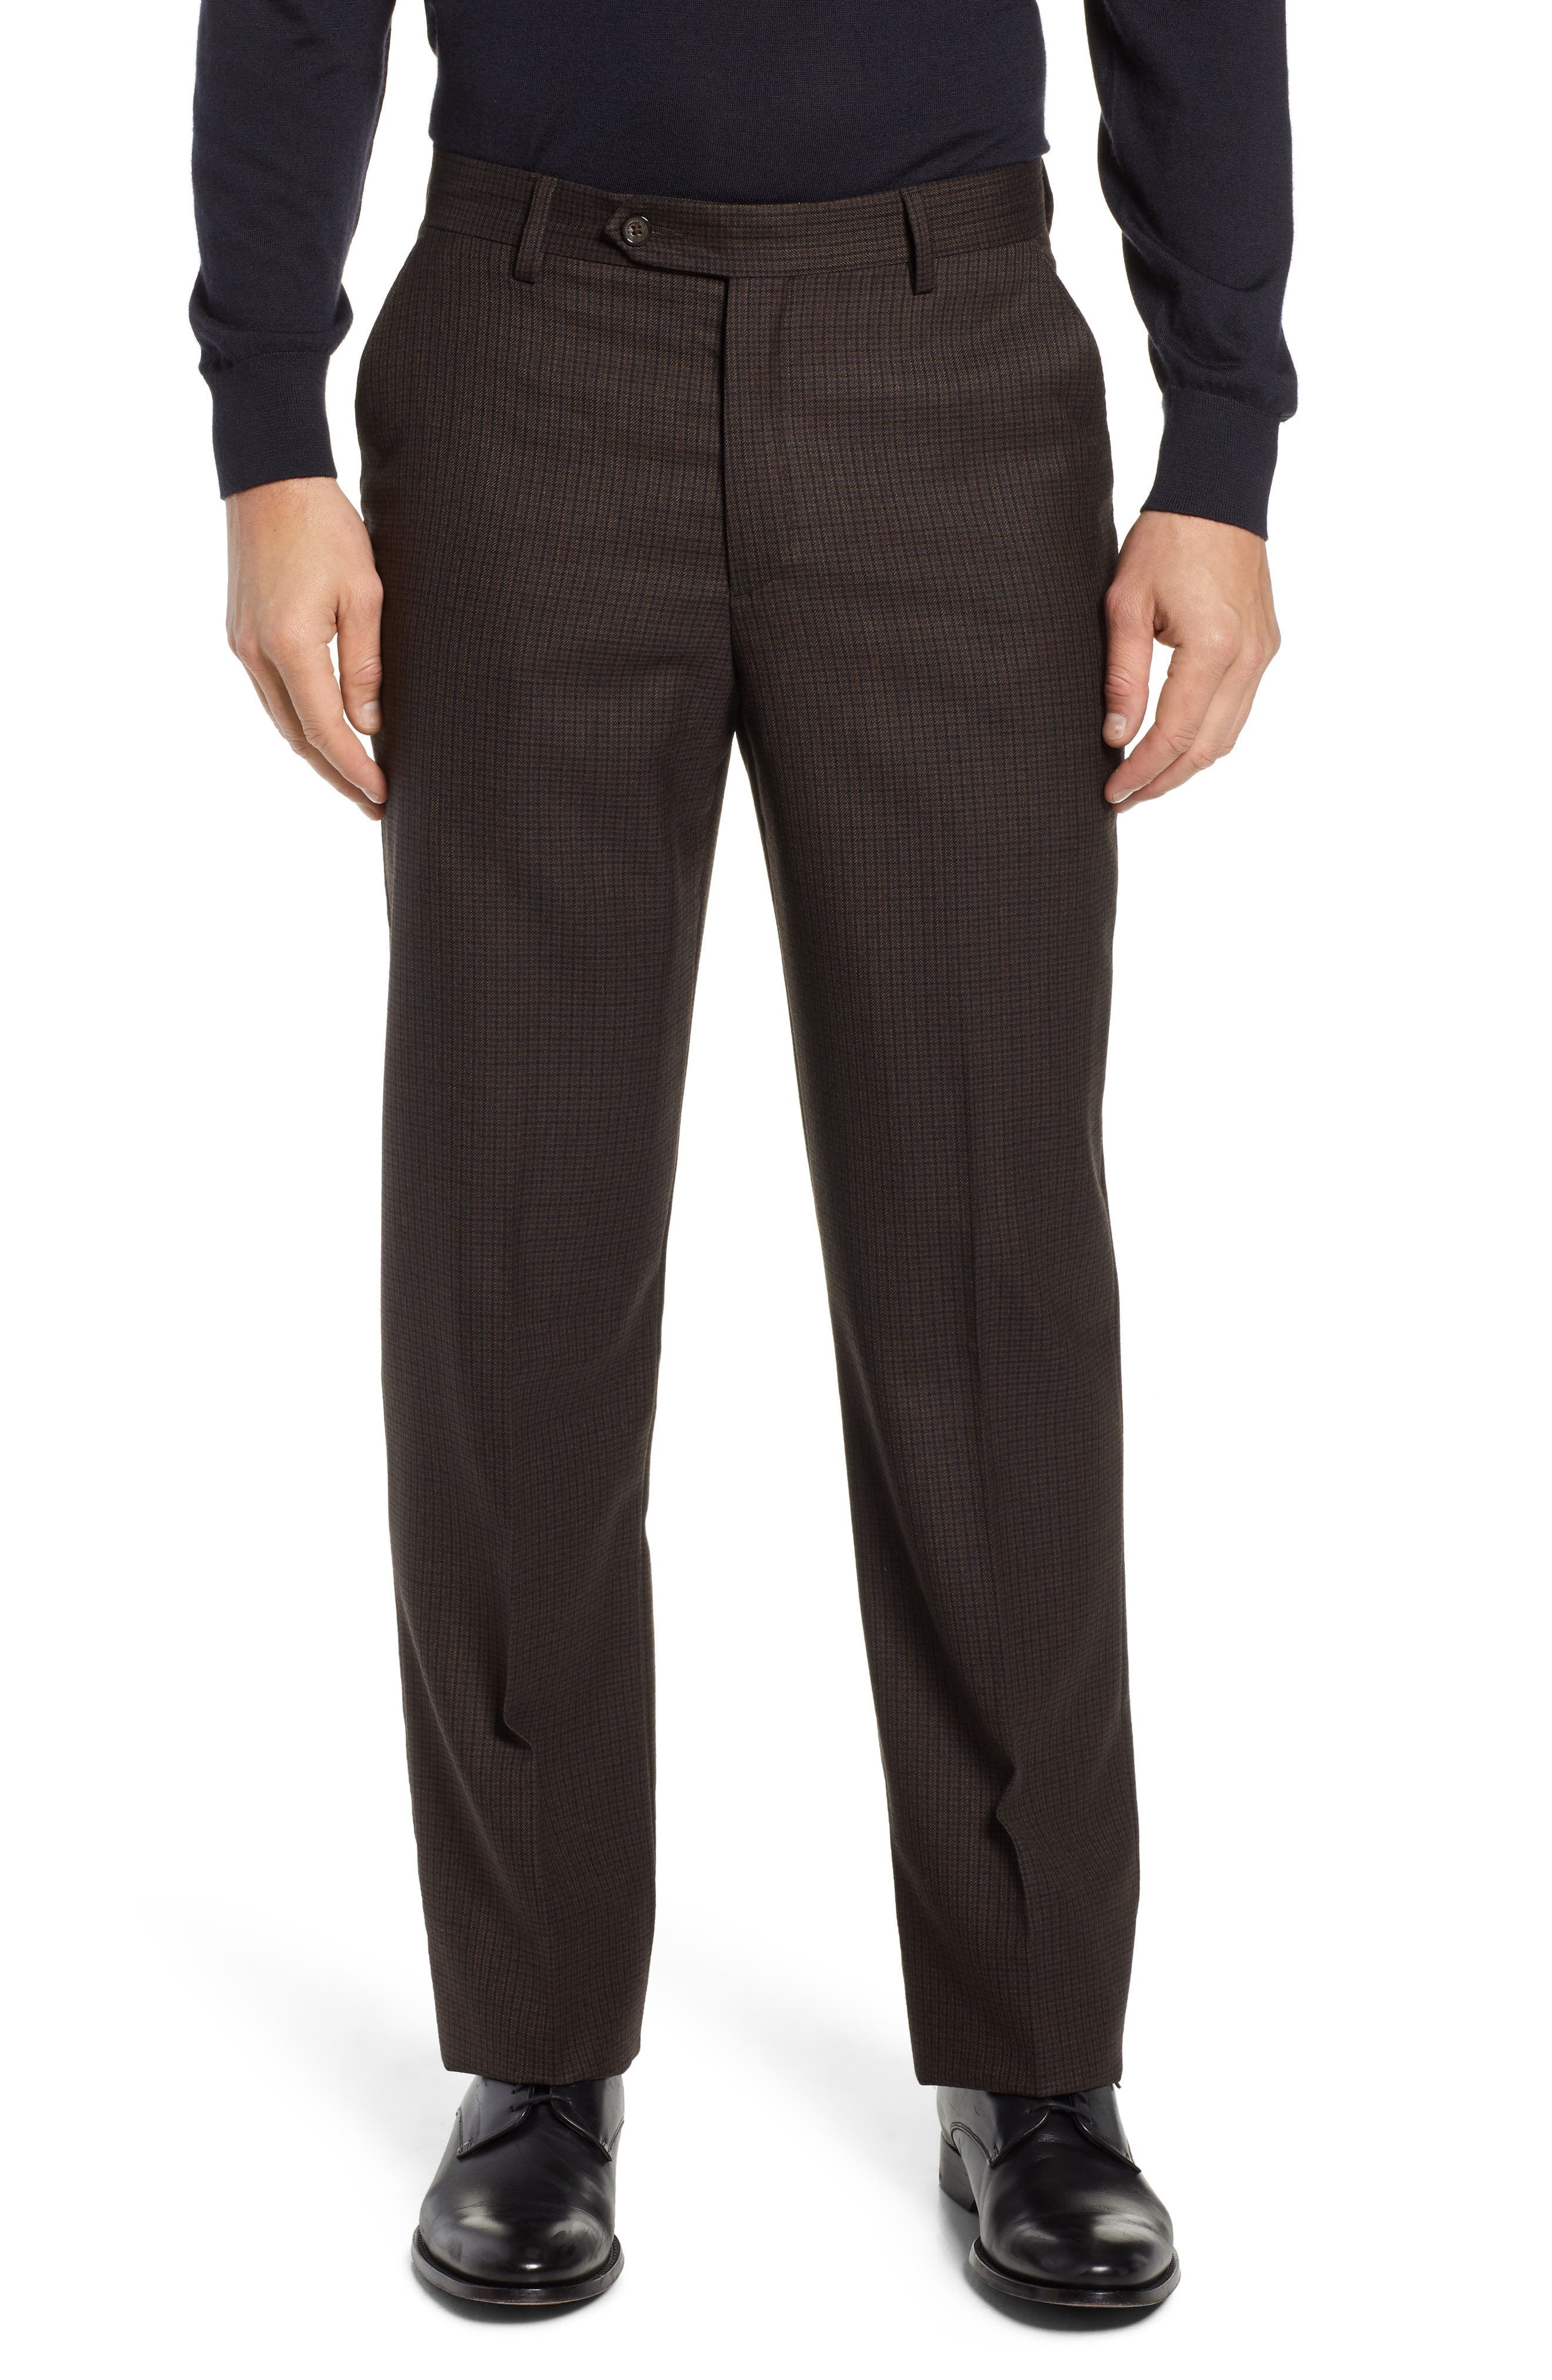 A crisp check grid defines classic trousers crafted from super 100s wool in a classic flat-front cut. Style Name: Berle Manufacturing Flat Front Check Wool Trousers. Style Number: 5710716. Available in stores.